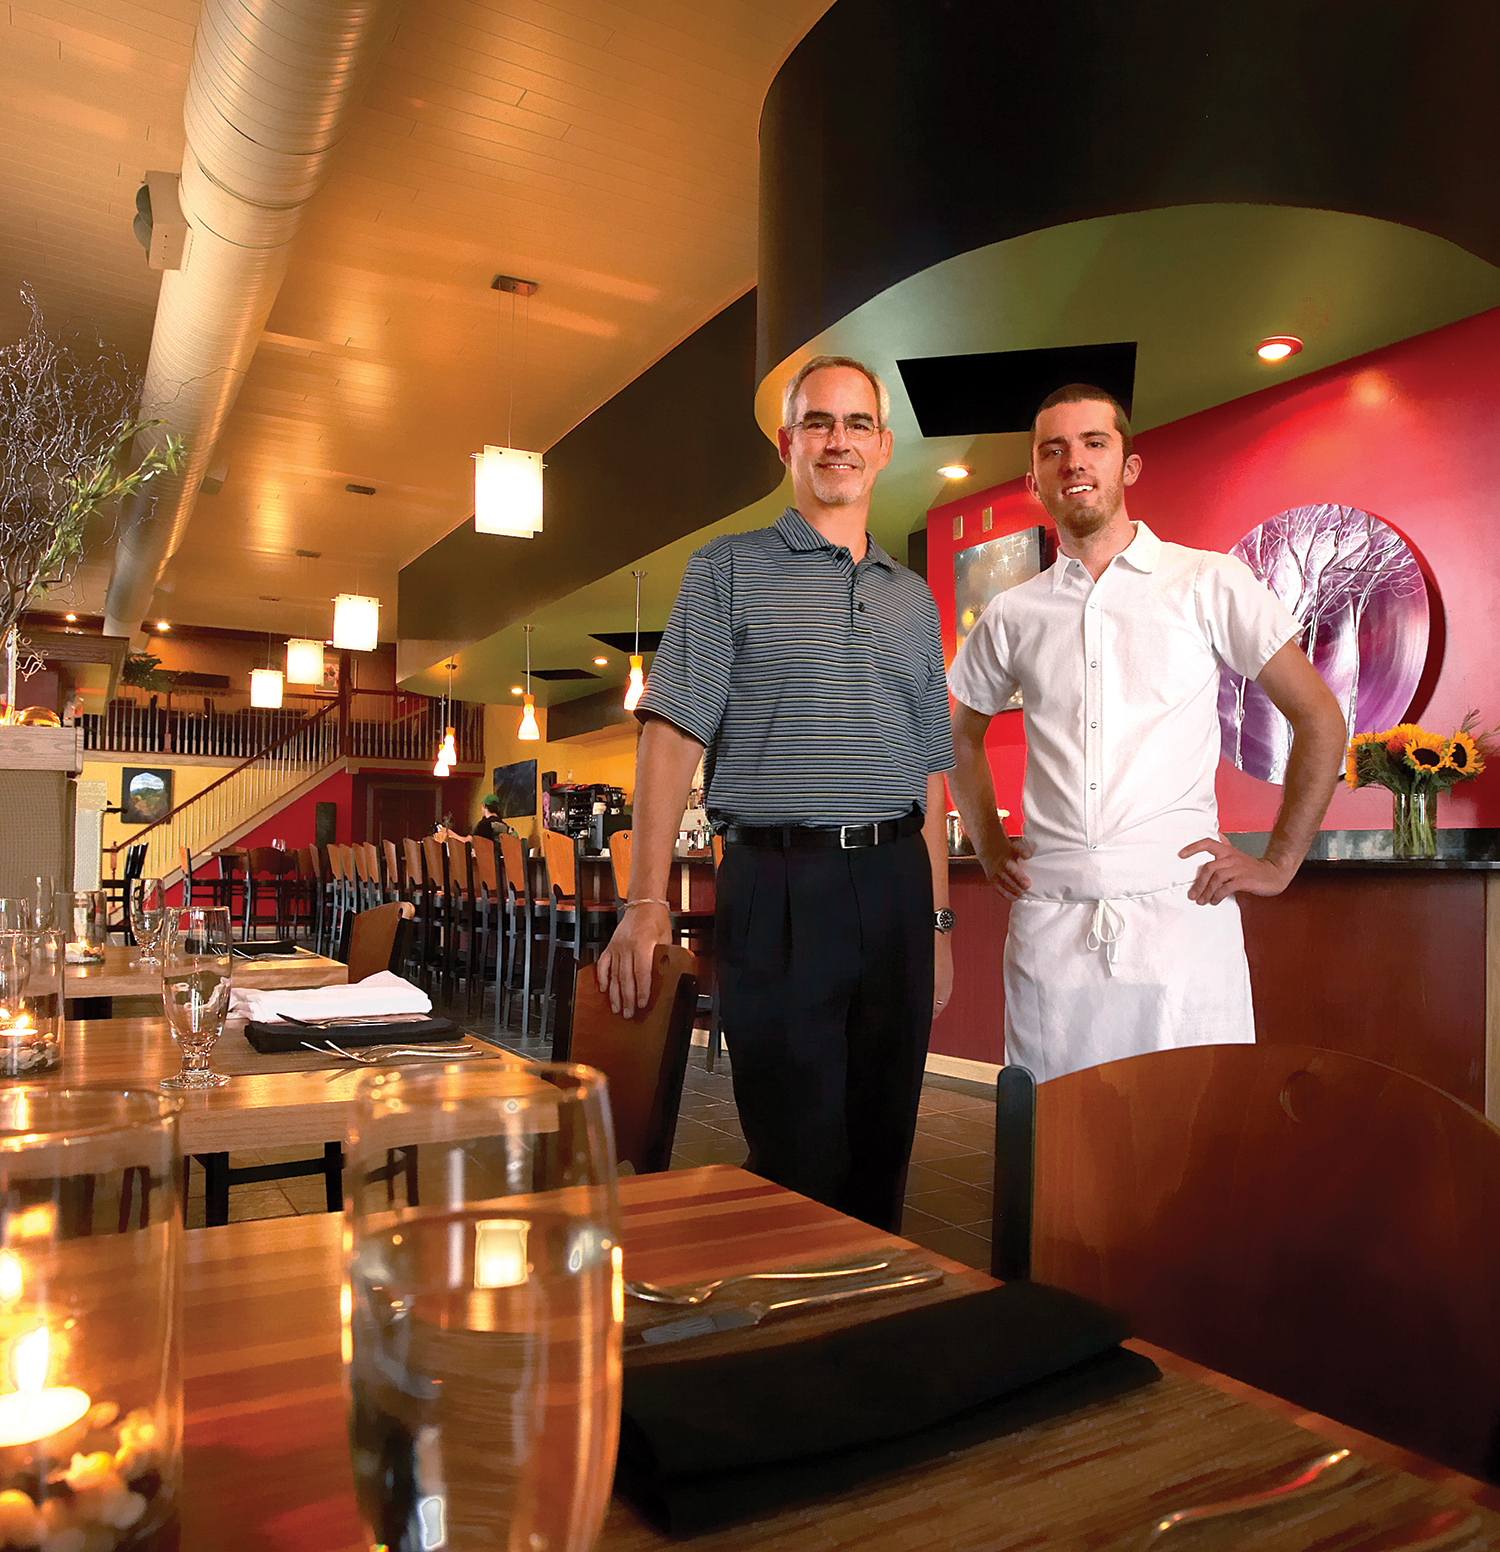 Owners, J.B. Innes and Executive Chef Dan Kern